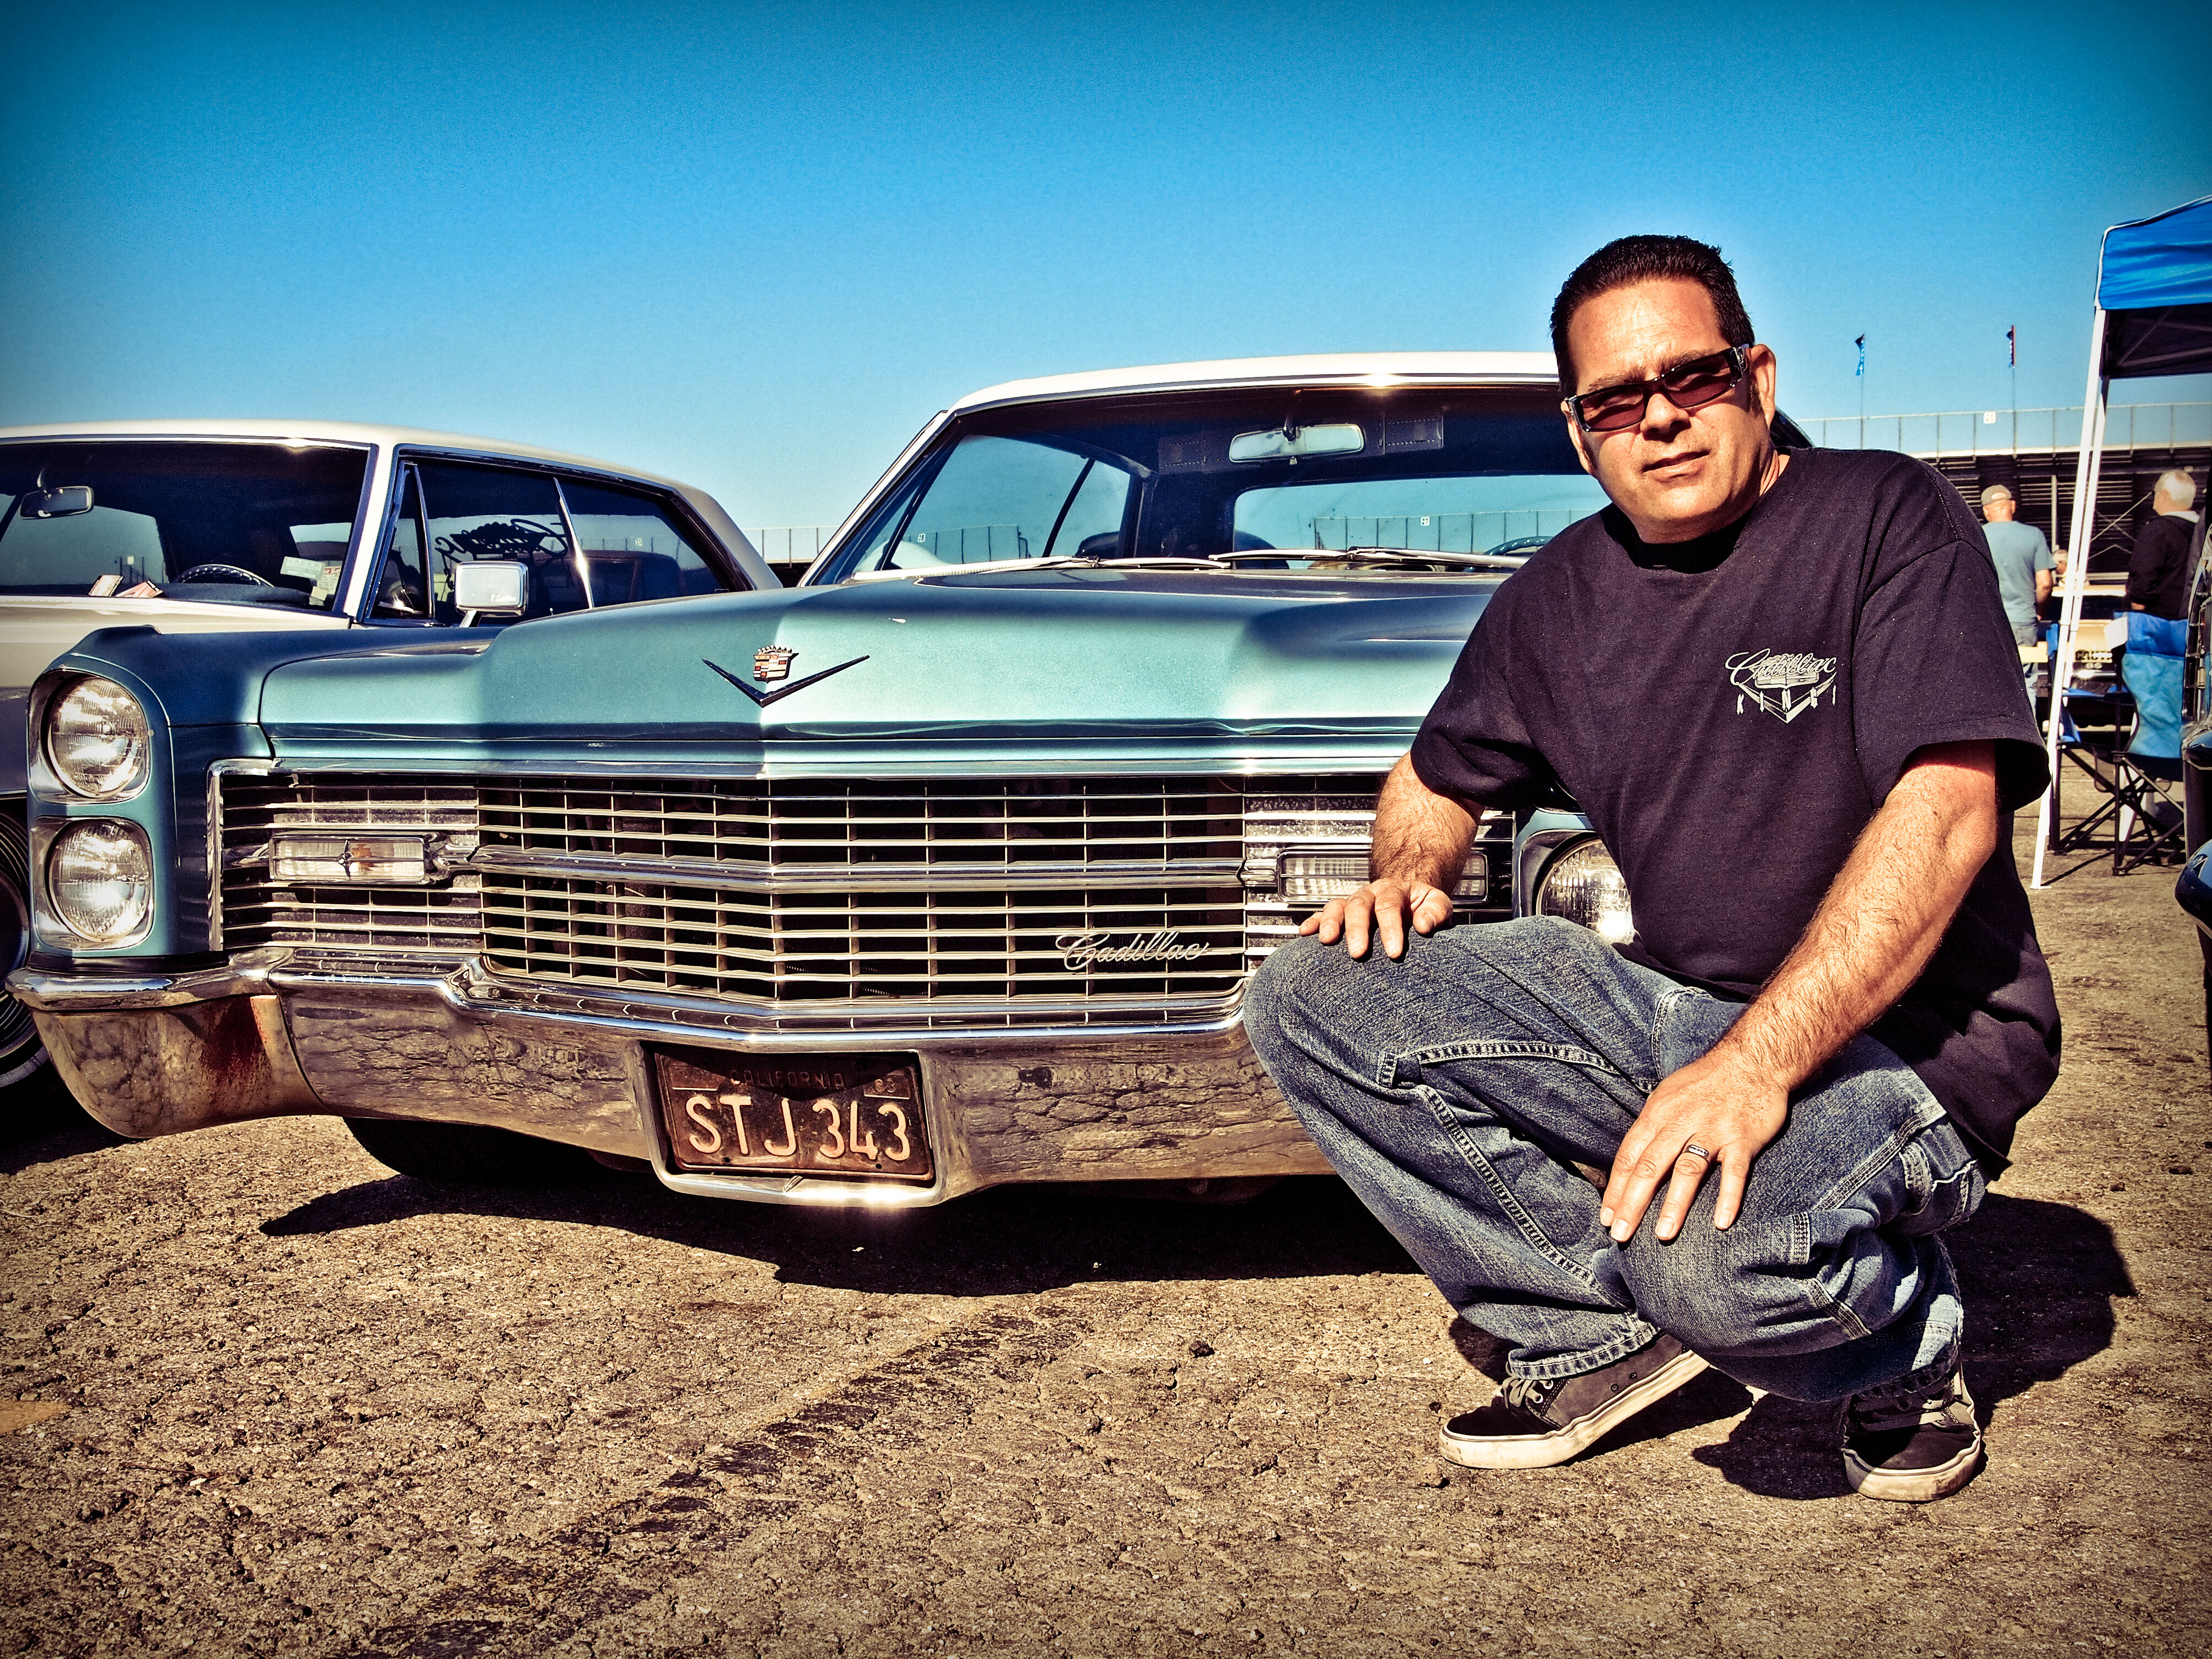 Brian Bohlier With His 1966 Cadillac Pomona Swap Meet